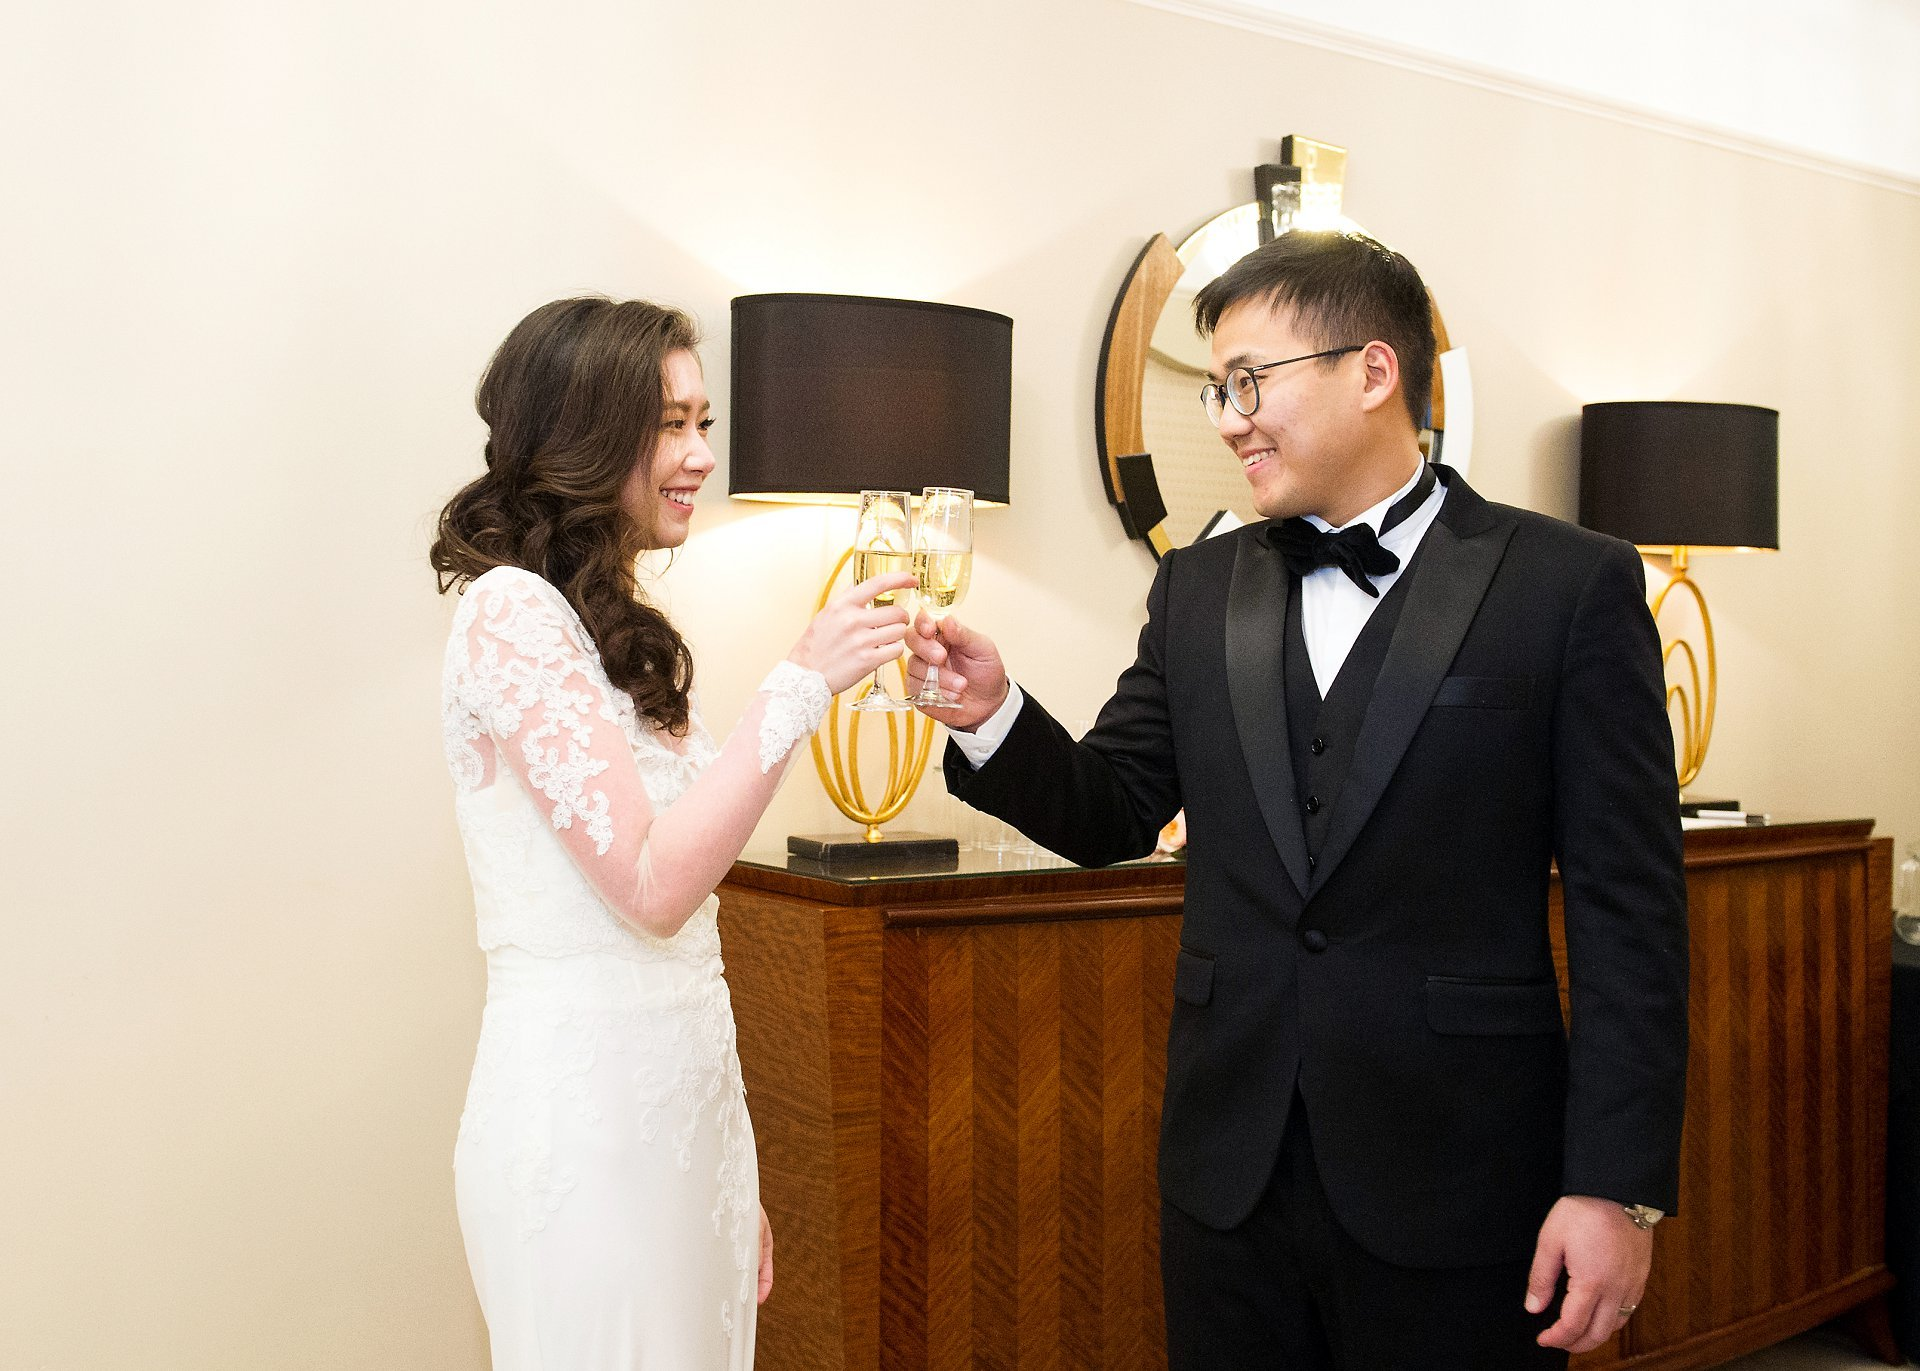 Lansdowne Club wedding reception bride and groom toast with champagne in private dining room